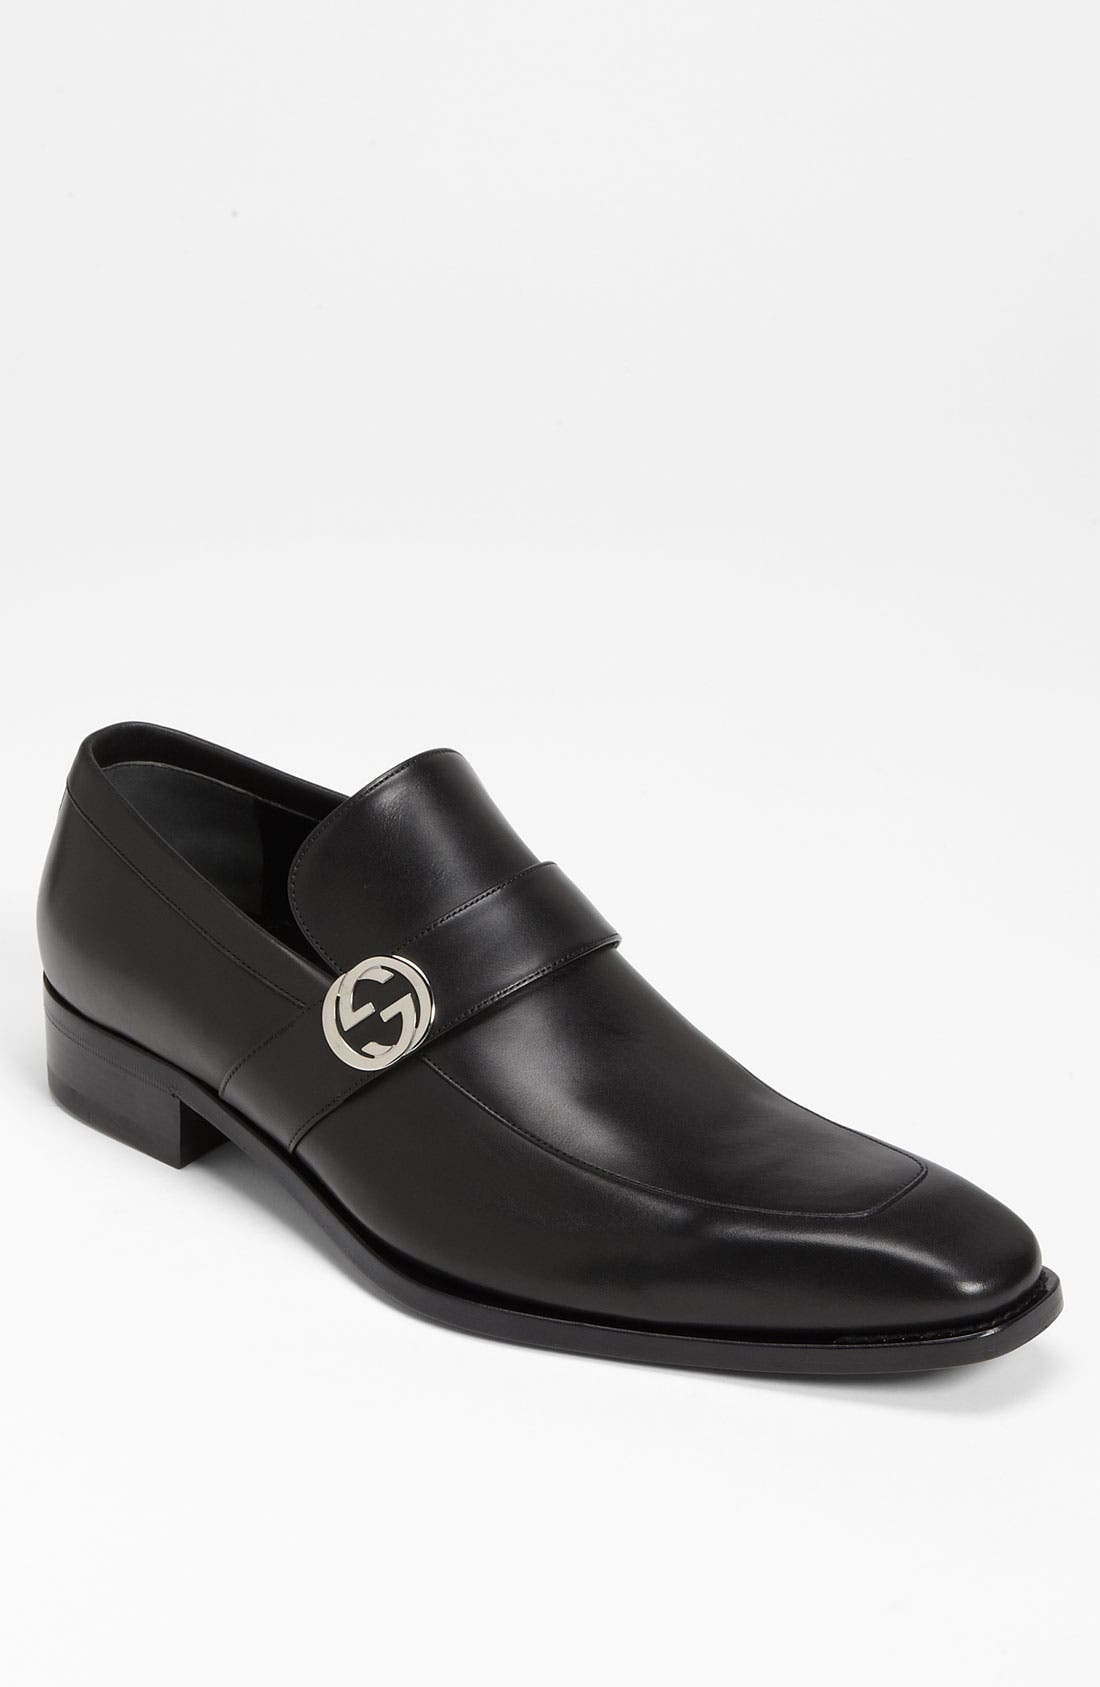 Alternate Image 1 Selected - Gucci 'Double G' Loafer